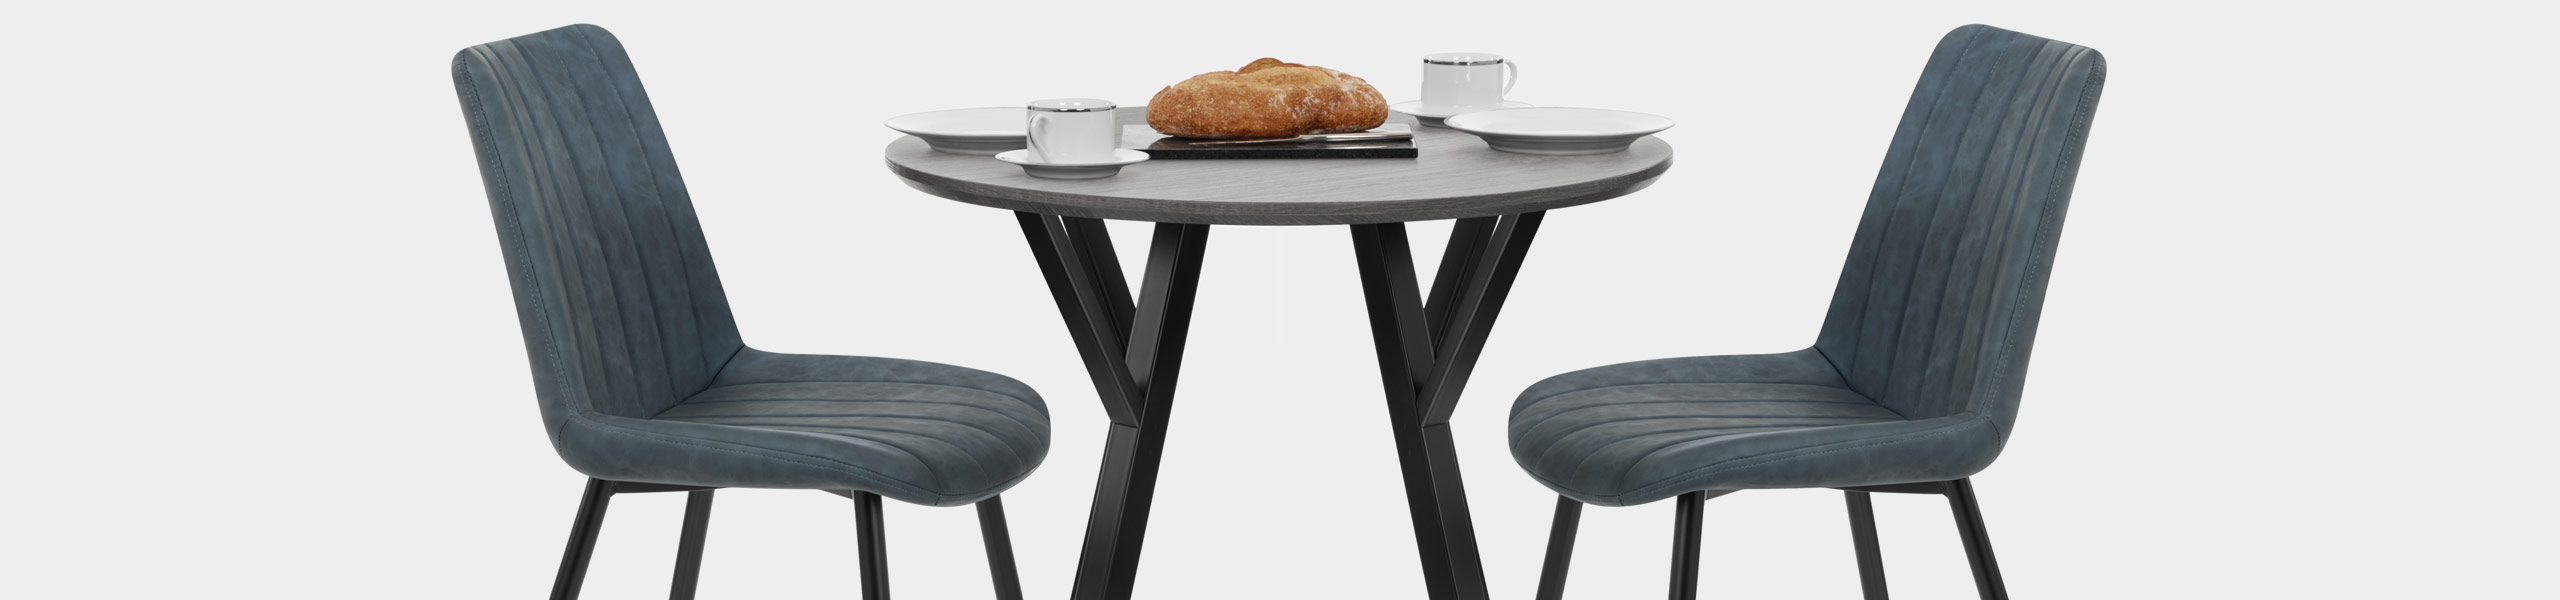 Wessex Dining Set Grey Wood & Blue Video Banner